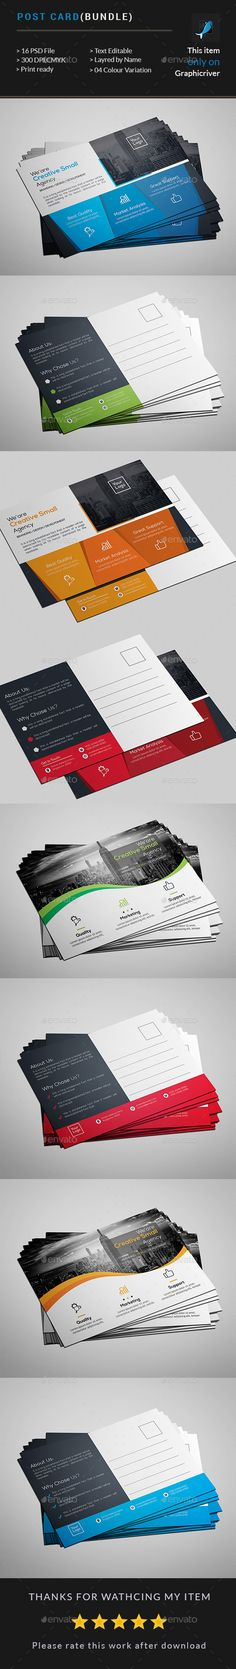 Post card Bundle(2 In 1) - #Cards & #Invites Print #Templates Download here: https://graphicriver.net/item/post-card-bundle2-in-1/19587268?ref=alena994